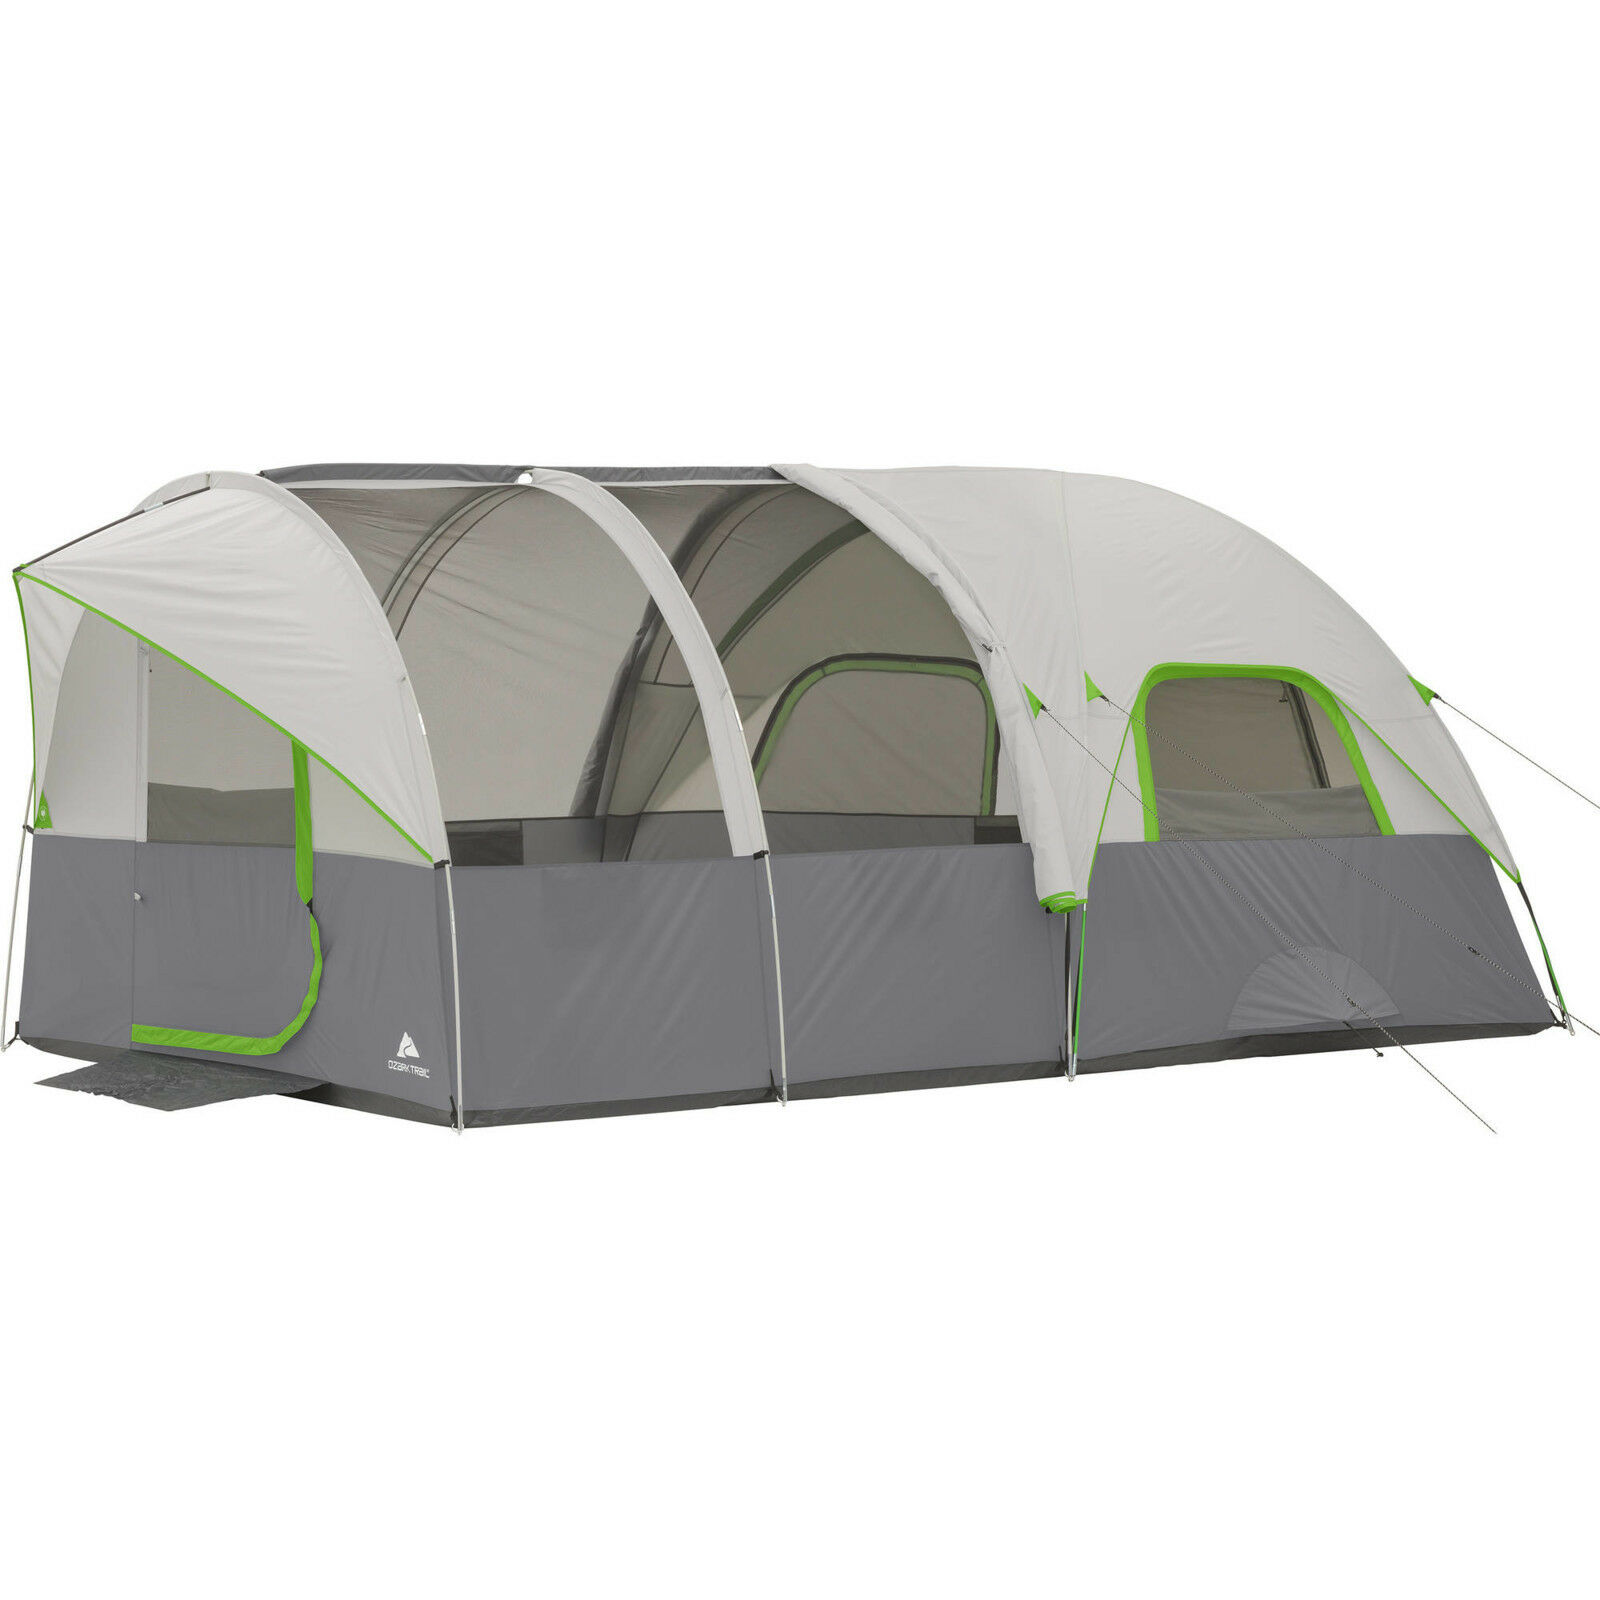 Large Family Sleeping Tent Dome Tunnel Camping Cabin Tents Airflow Panel Shelter